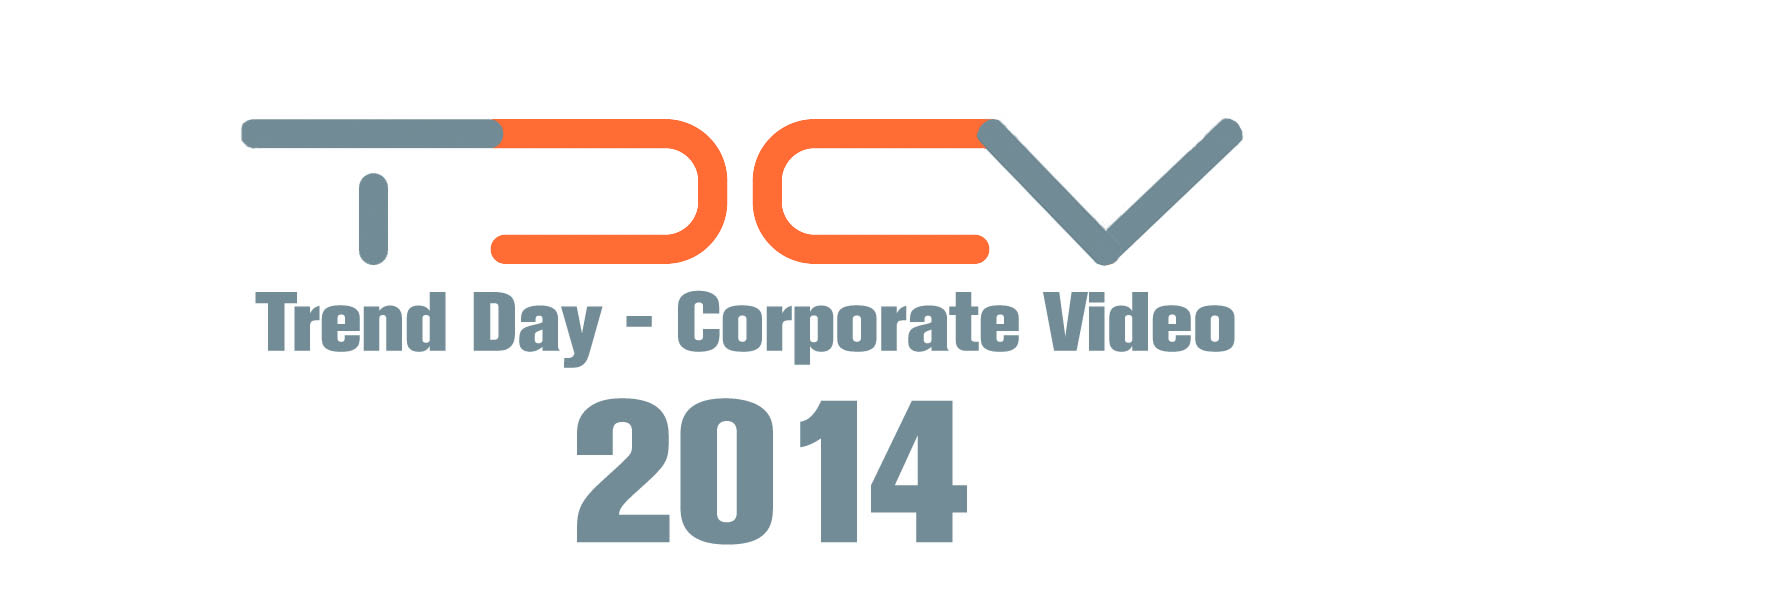 Trend Day – Corporate Video 2014